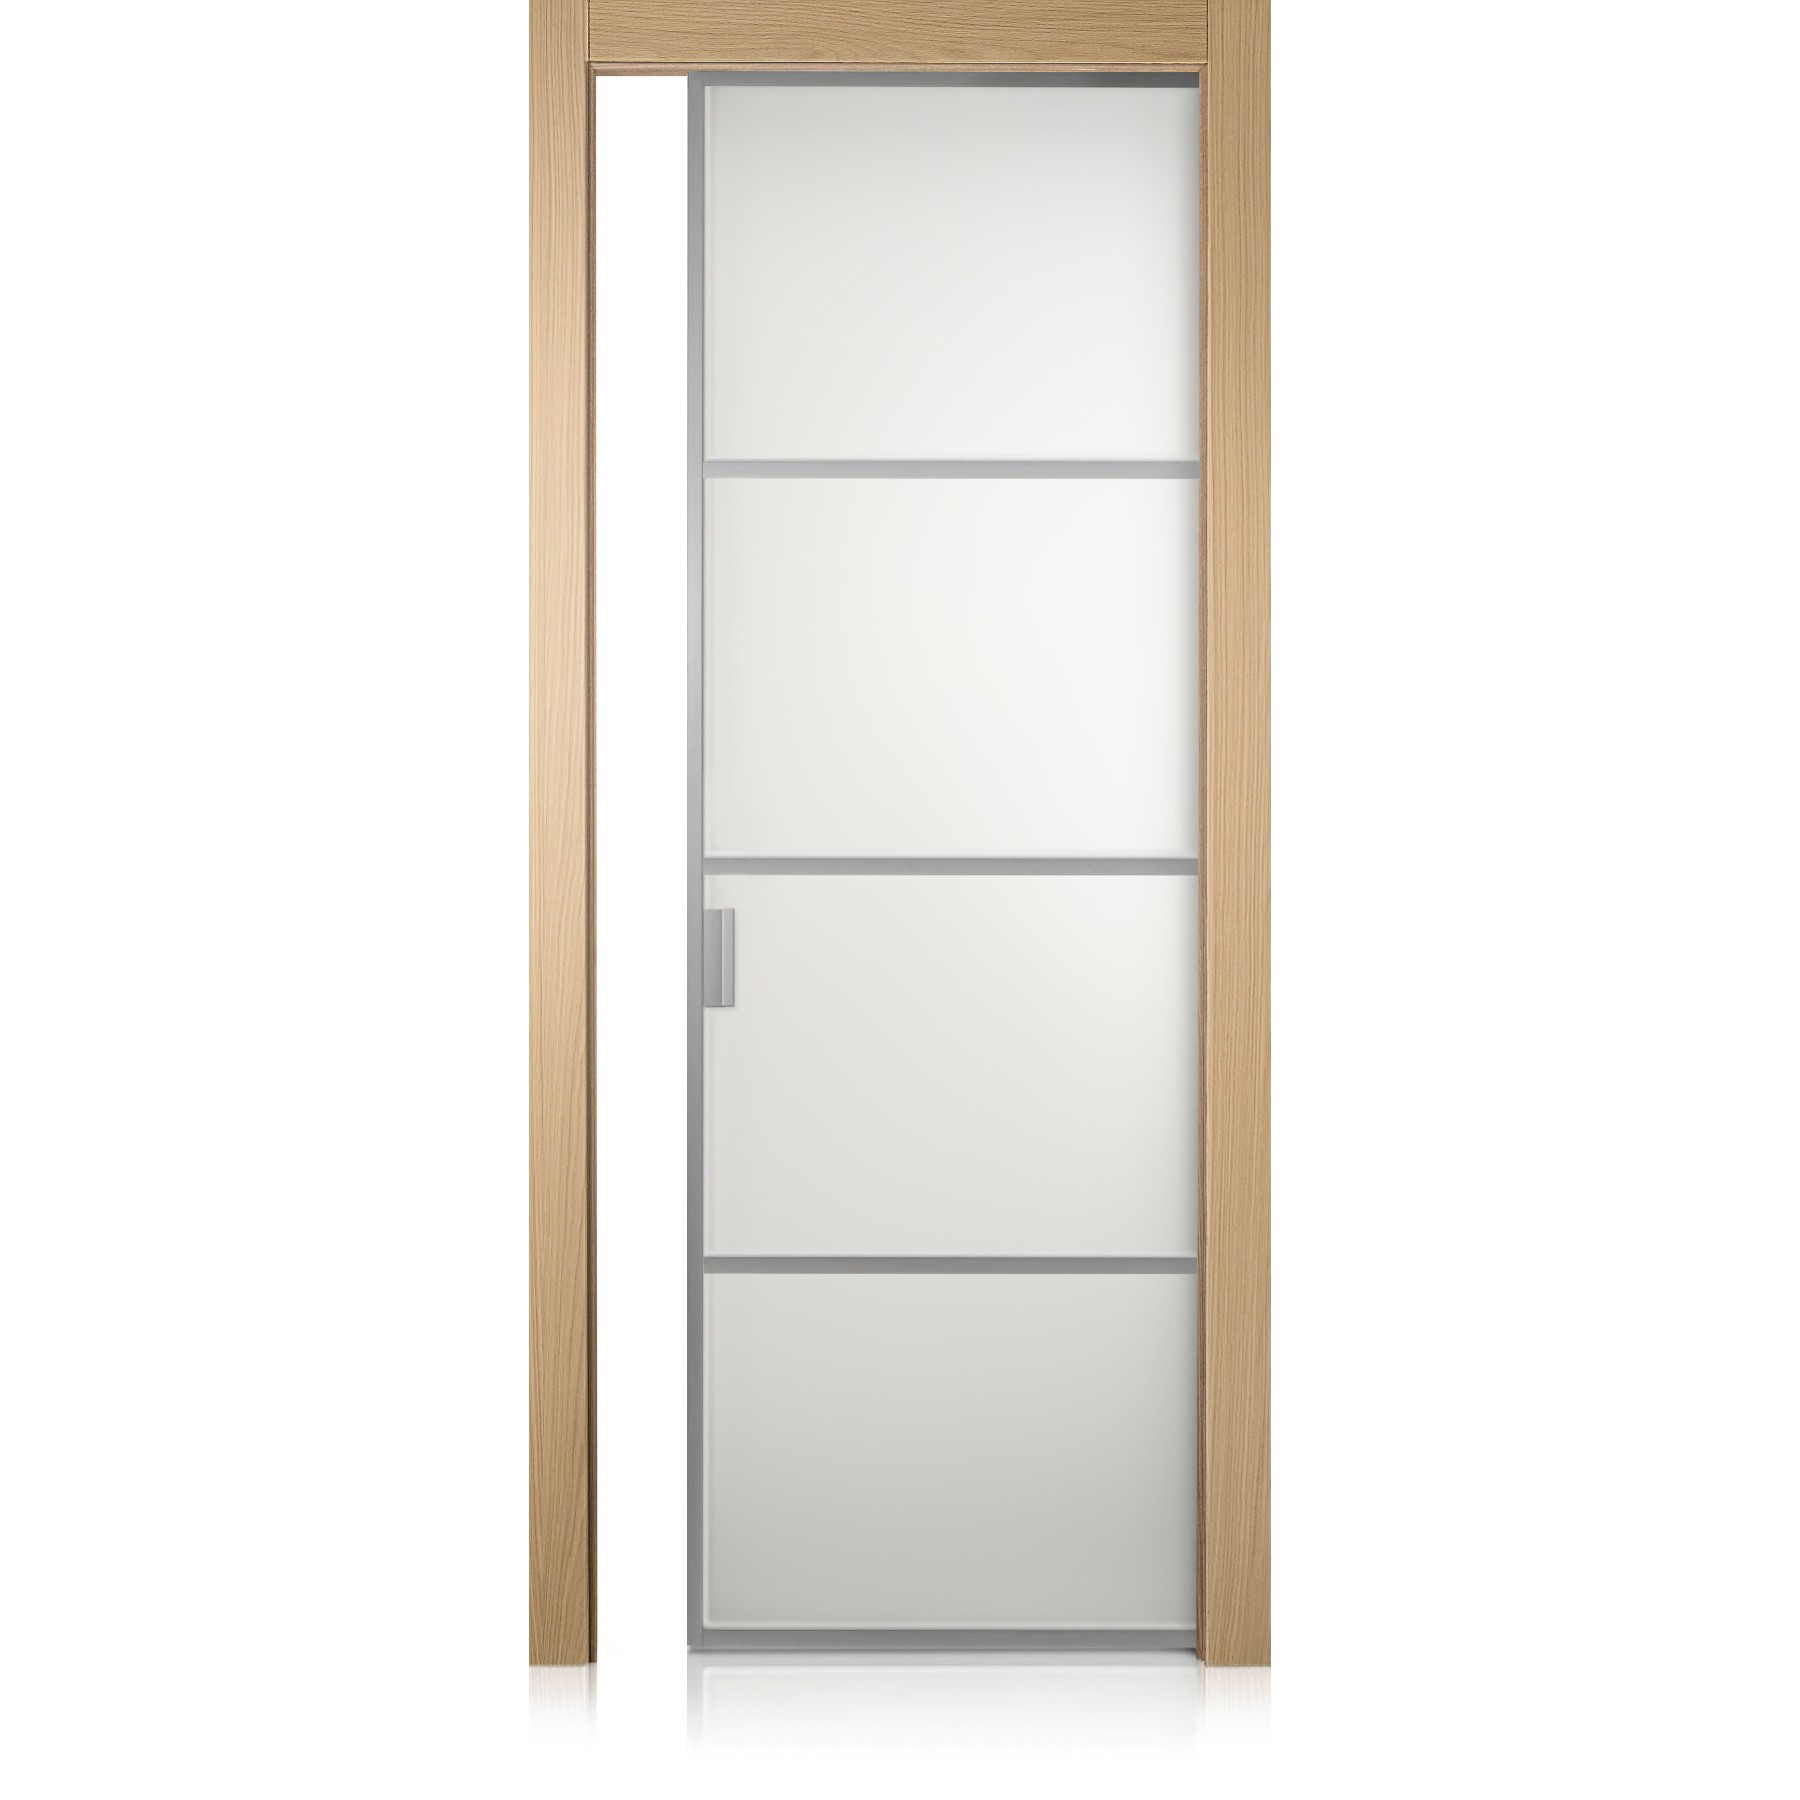 Cristal Frame / 3 rovere natural touch door